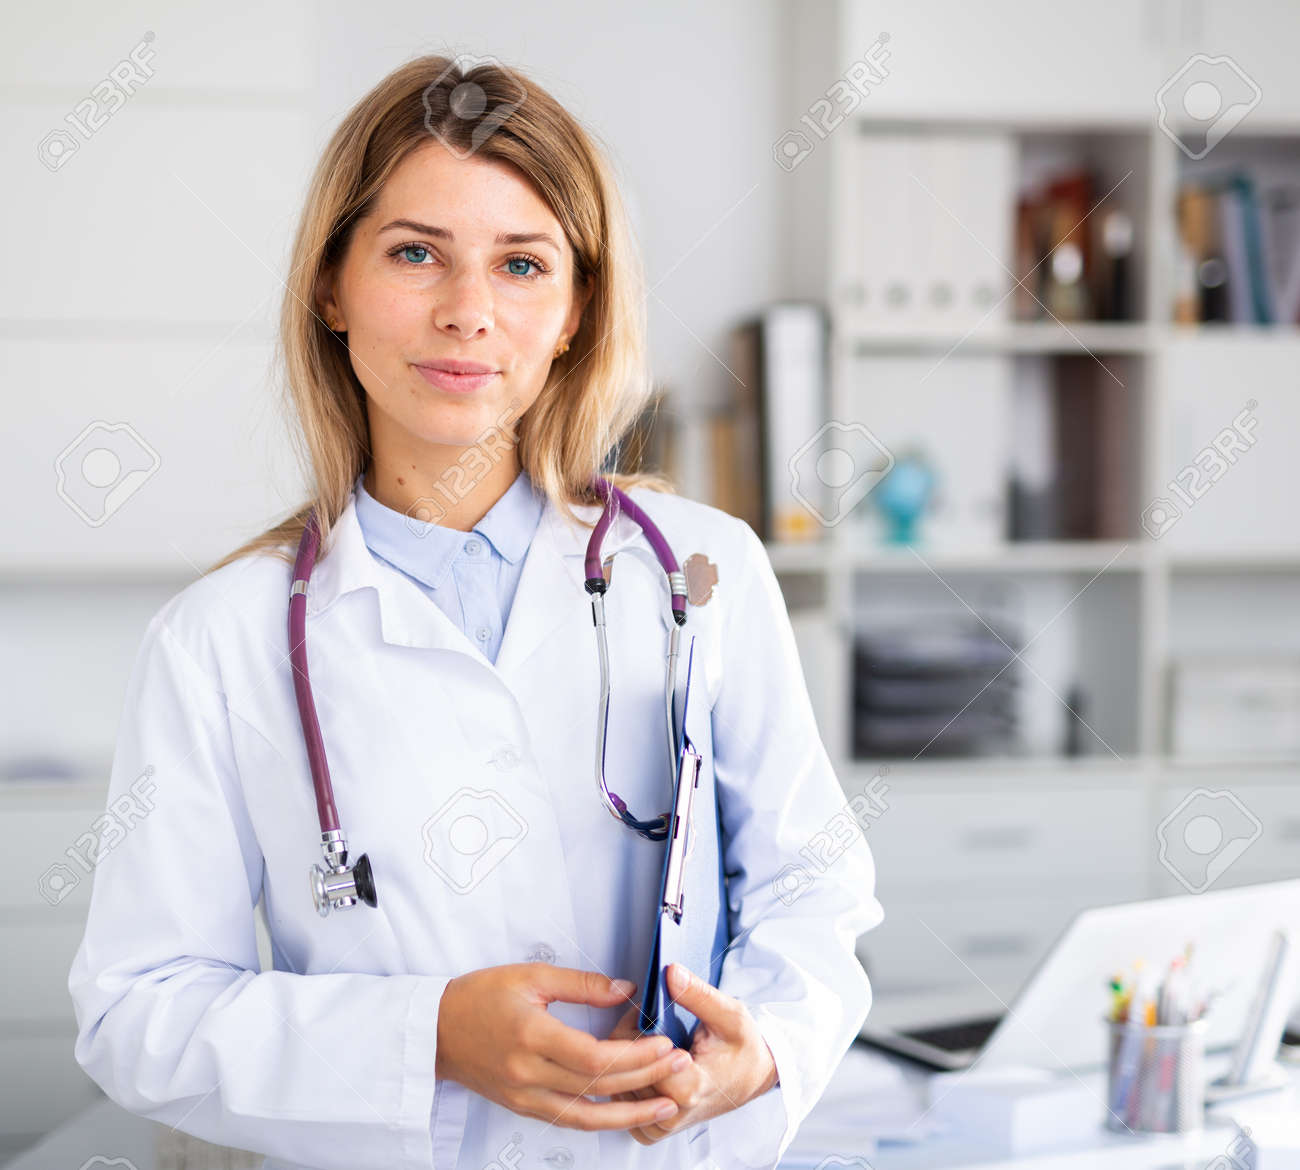 positive female doctor with stethoscope working in cabinet - 158618246